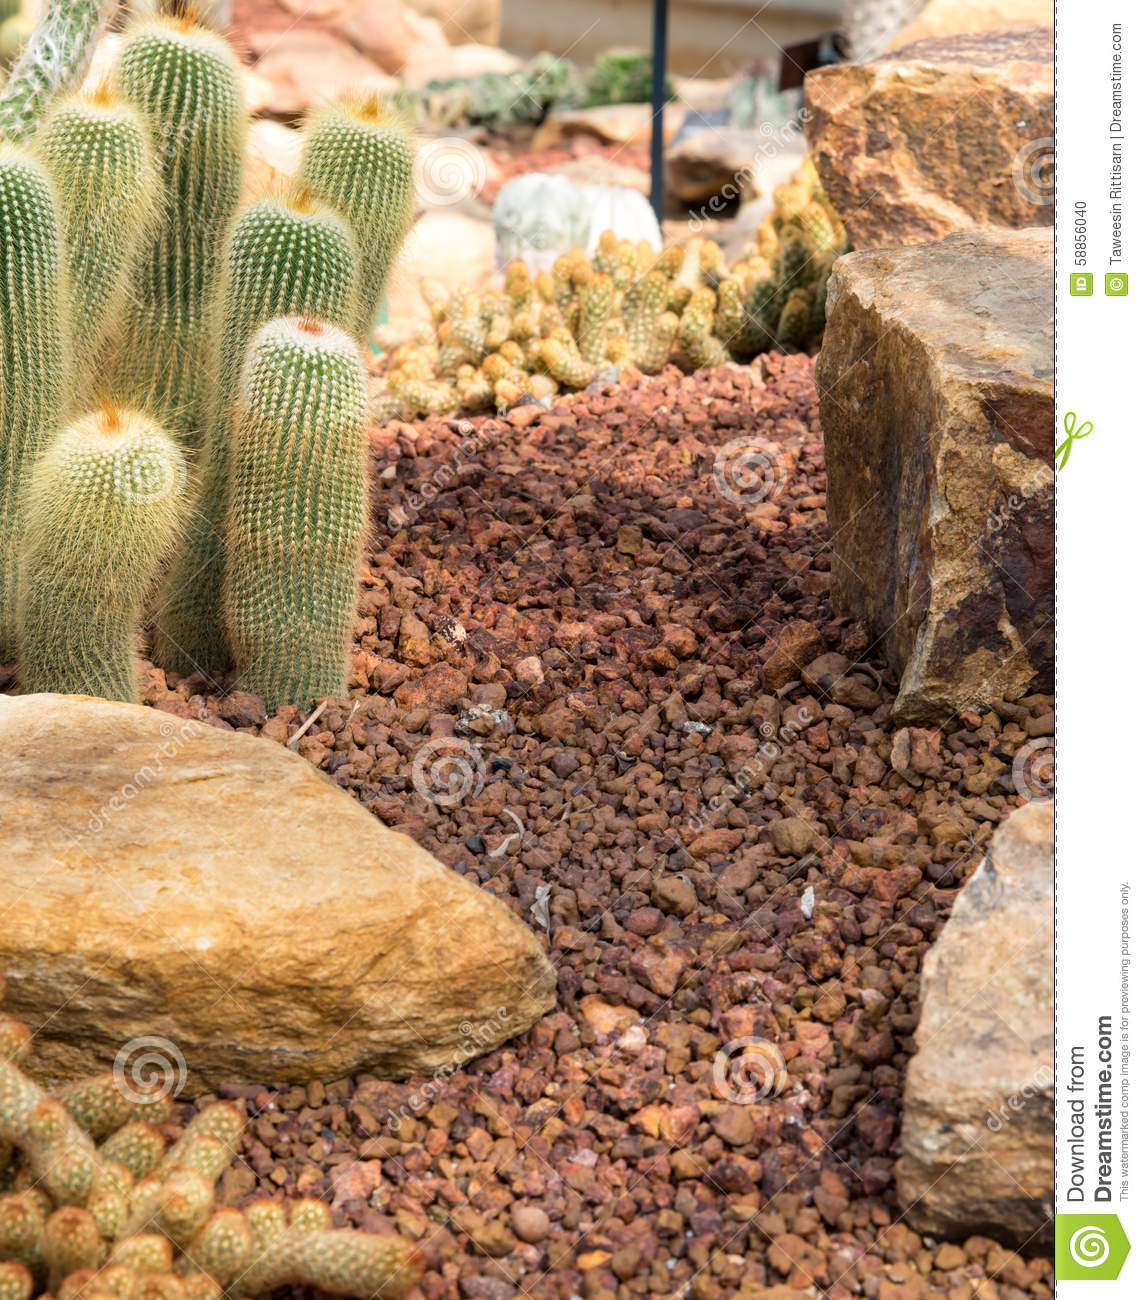 Small cactus and flower blooming in the garden